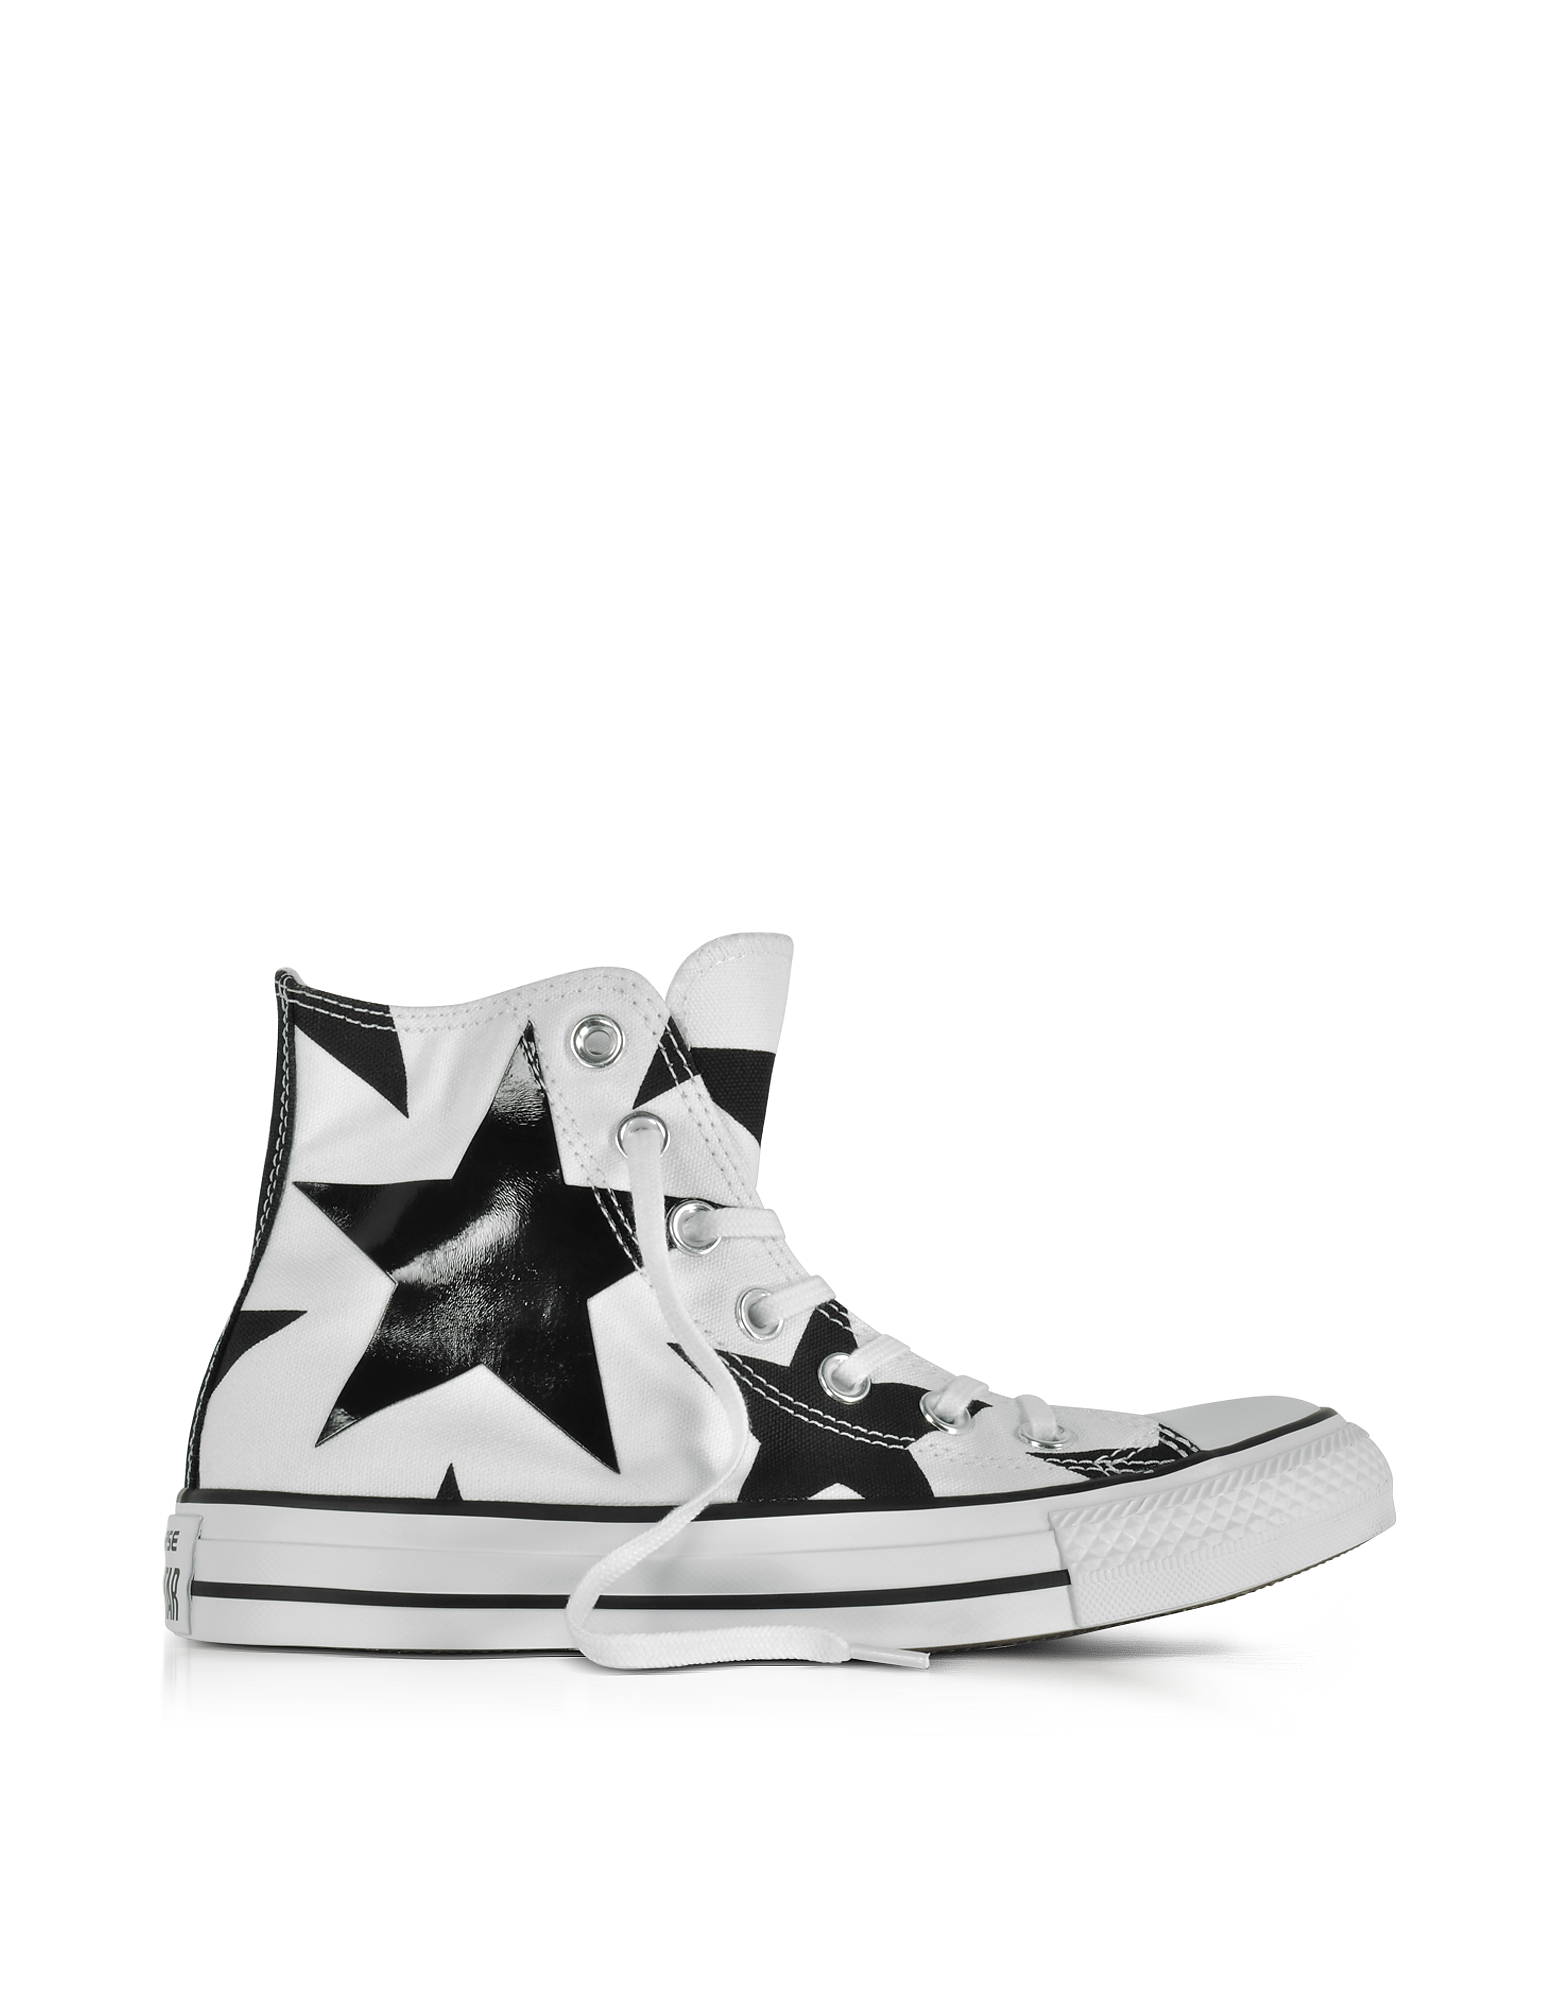 Converse Limited Edition Shoes, Chuck Taylor All Star High White Canvas W/Black Big Stars